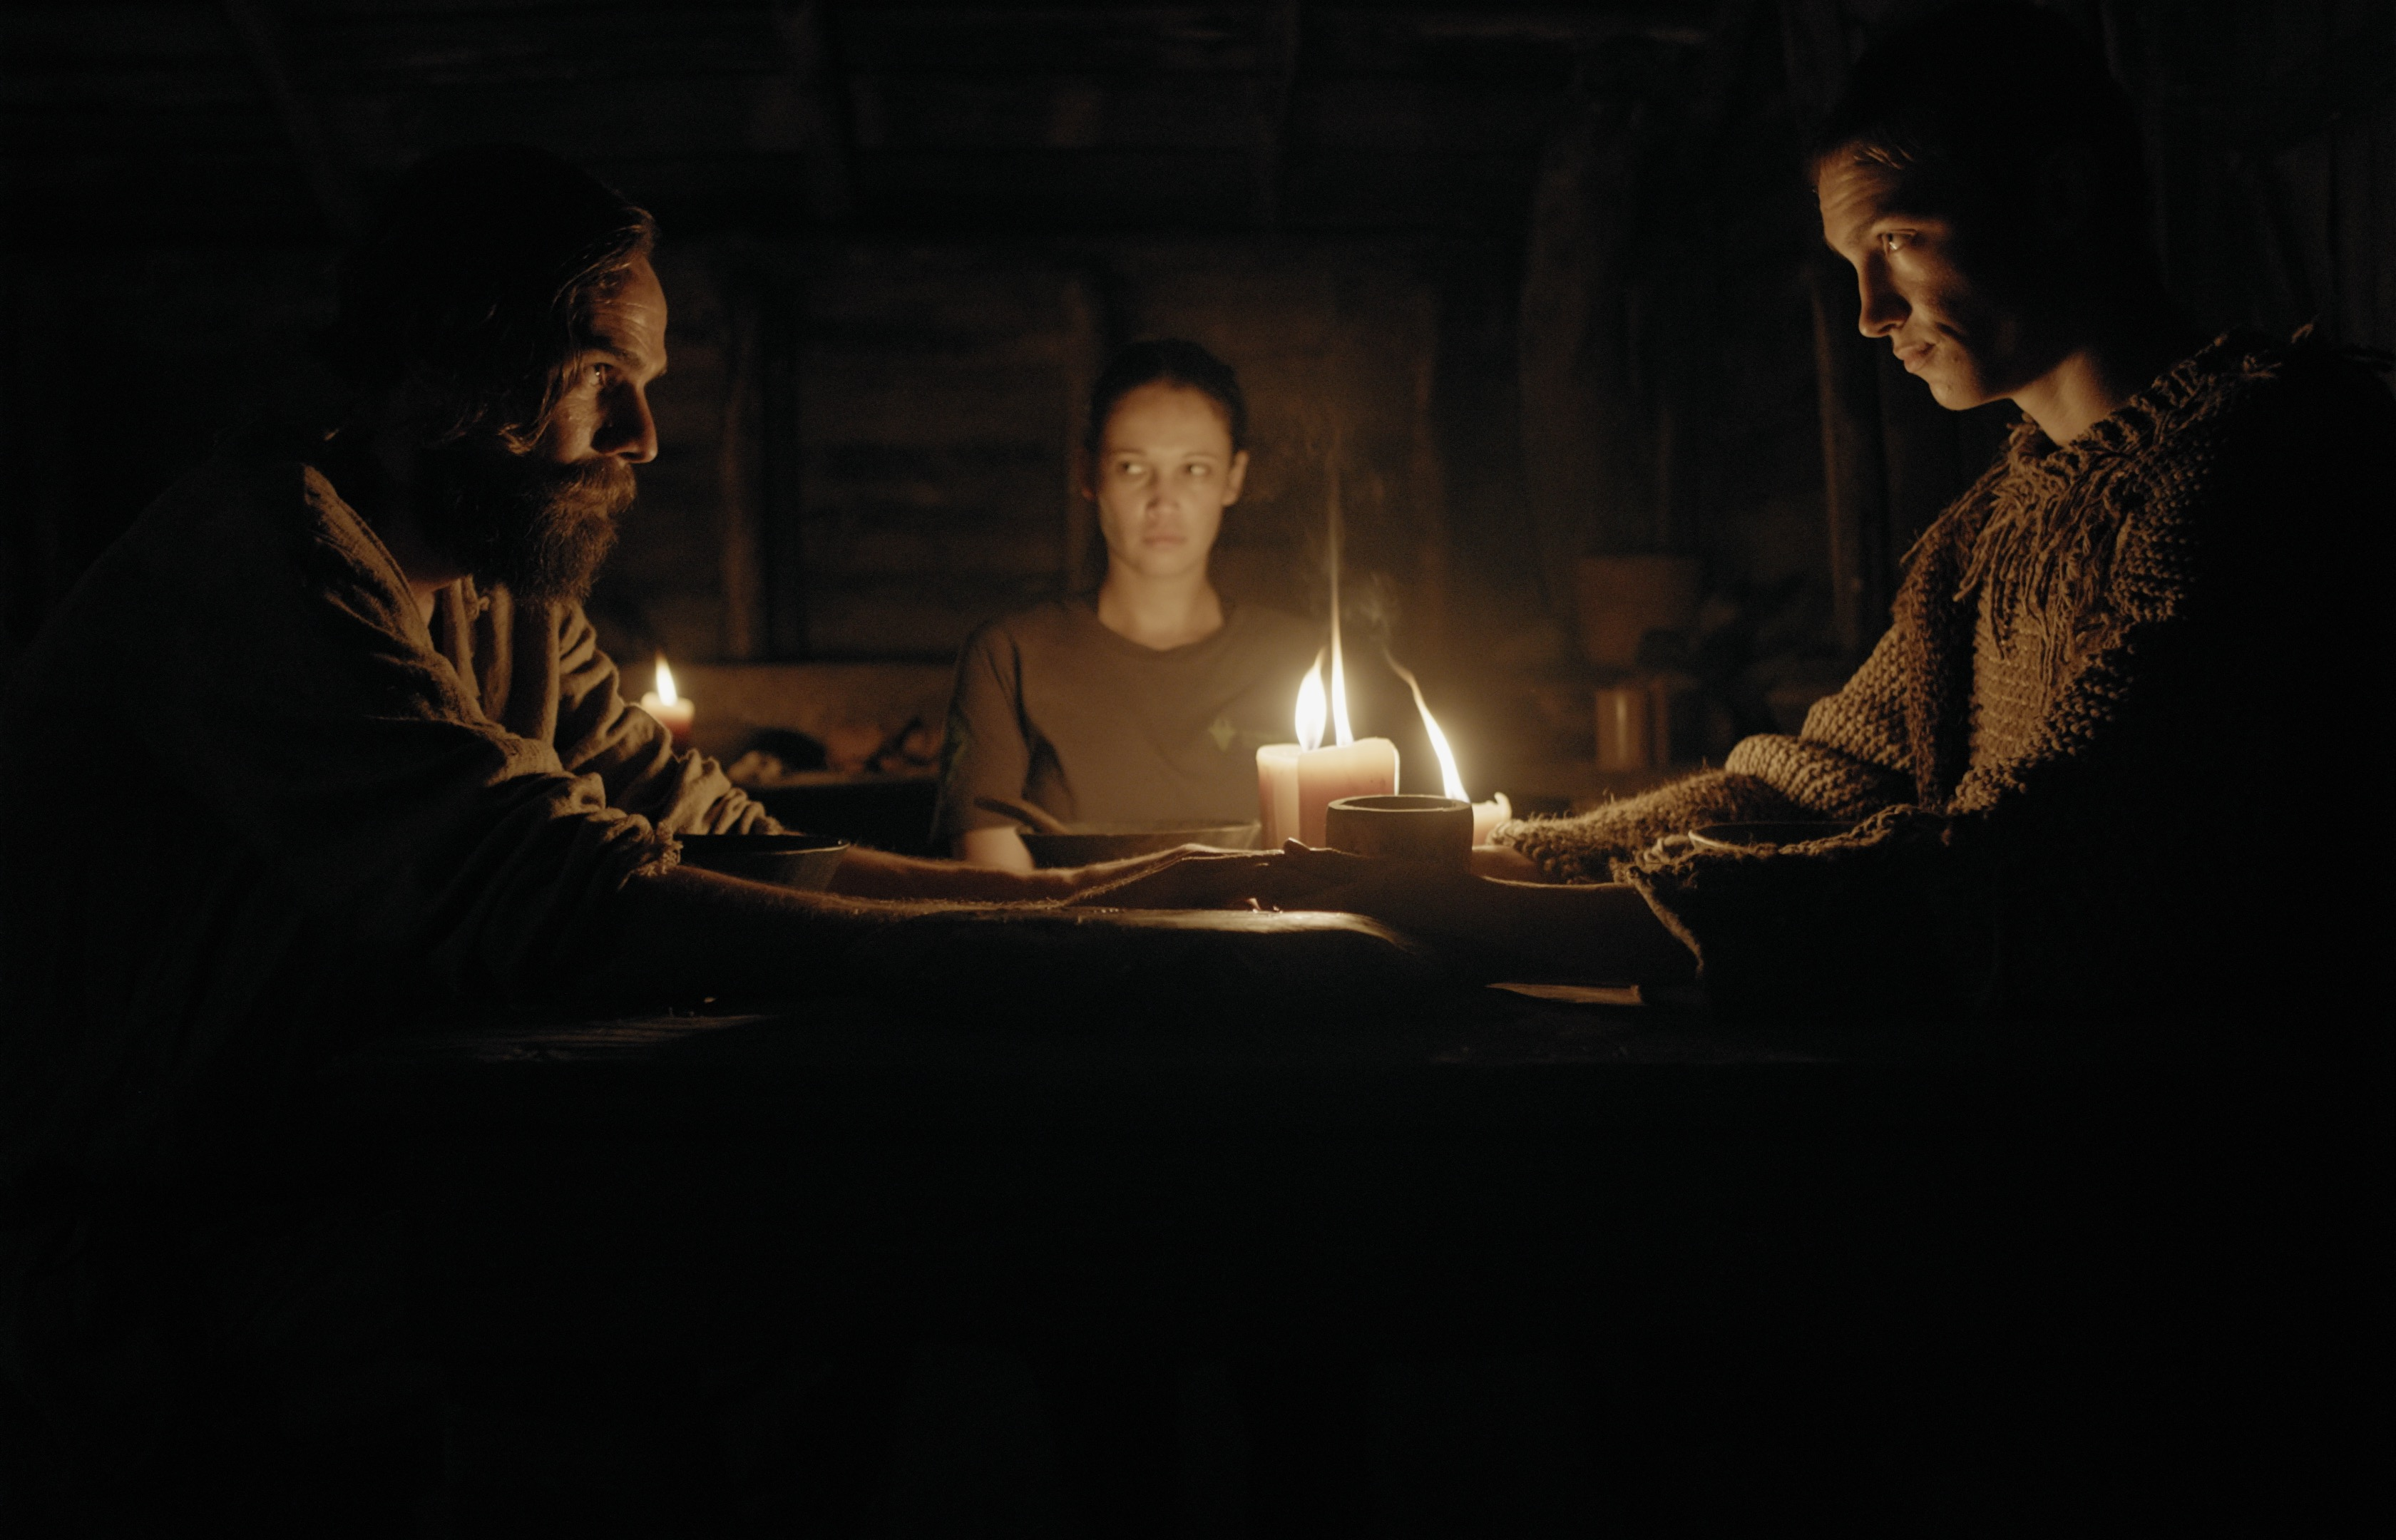 Decal Picks Up Horror Thriller 'Gaia' Ahead Of SXSW Debut